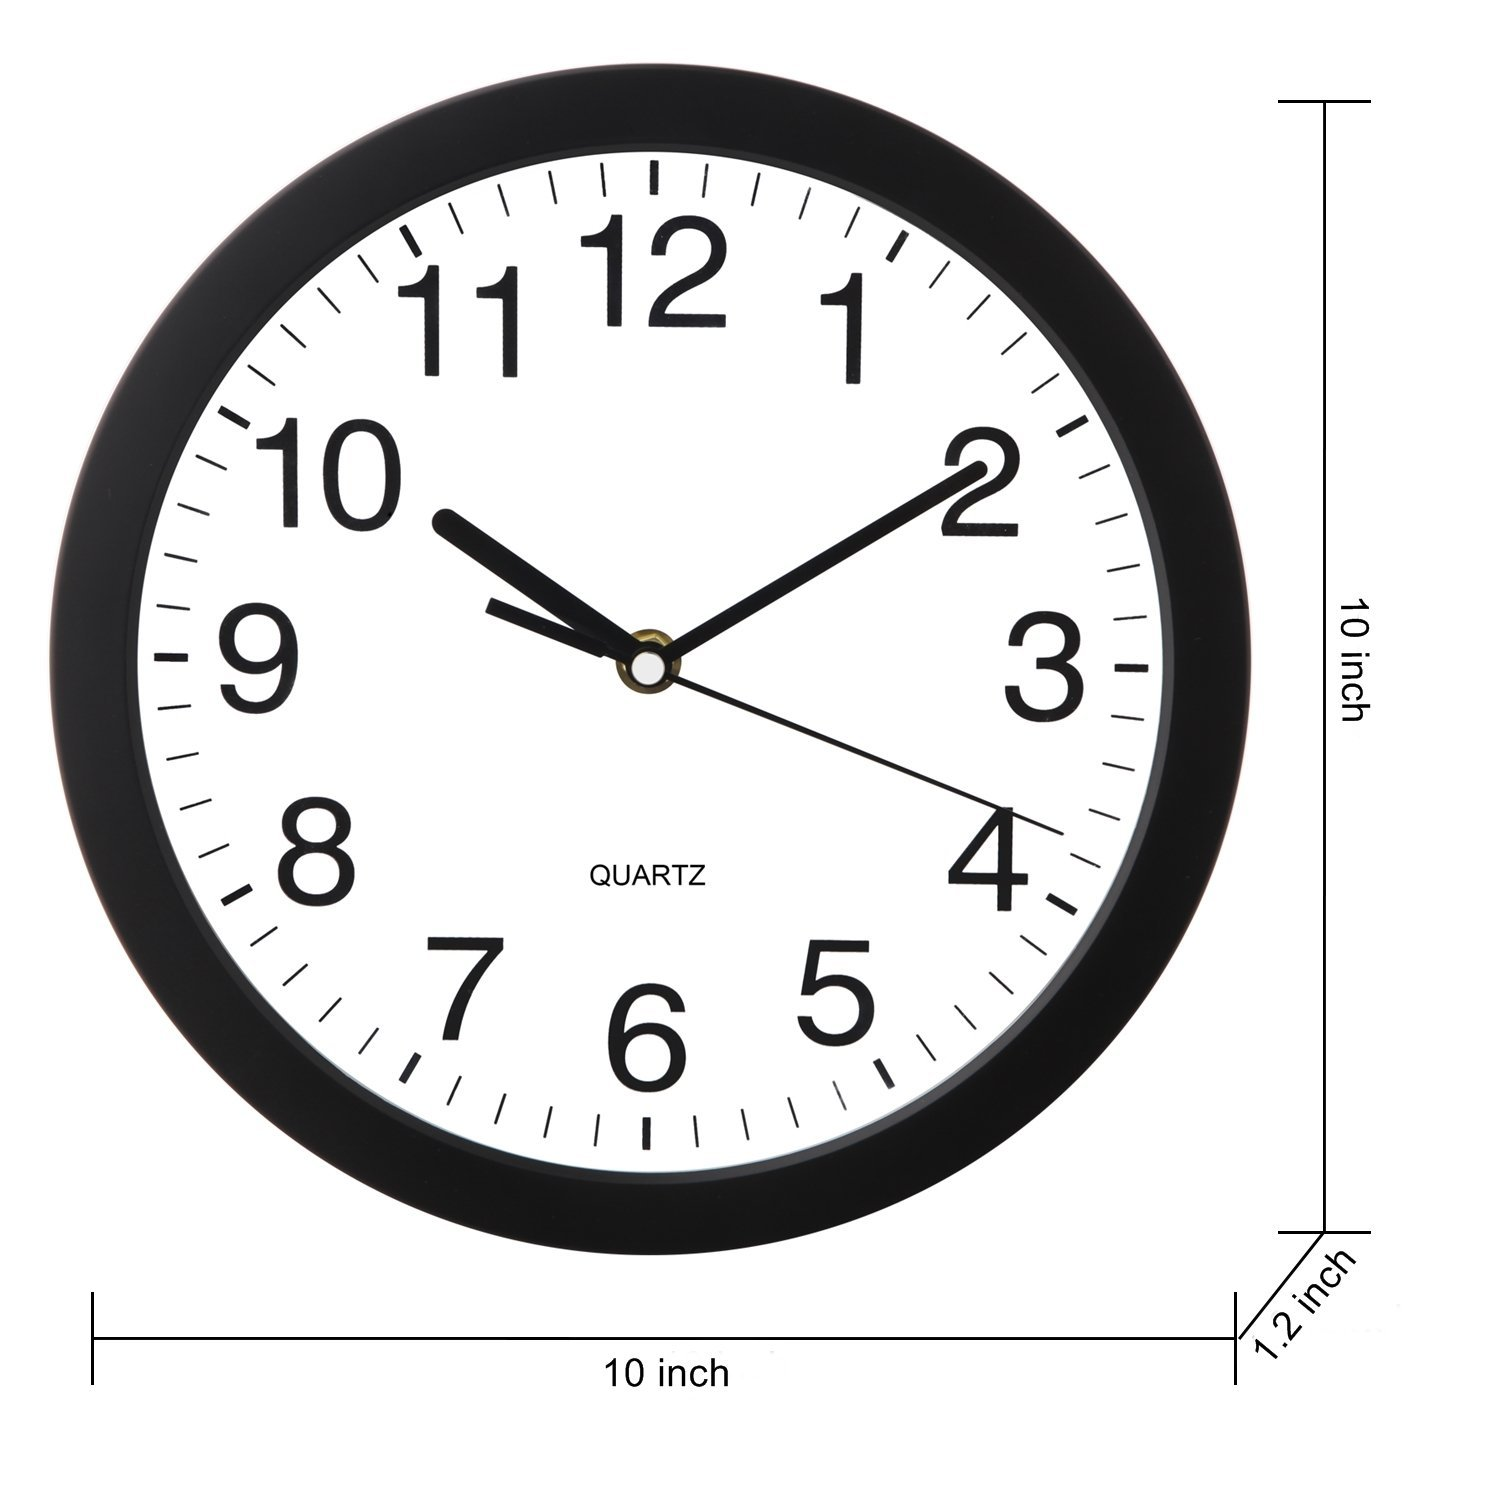 HeQiao Quartz Wall Clock, 10 inch Simple Silent Round Desk Clock Battery Operated Non-Ticking Easy to Read Large Decorative Wall Clocks for Home Kitchen Office School (Matte Black)